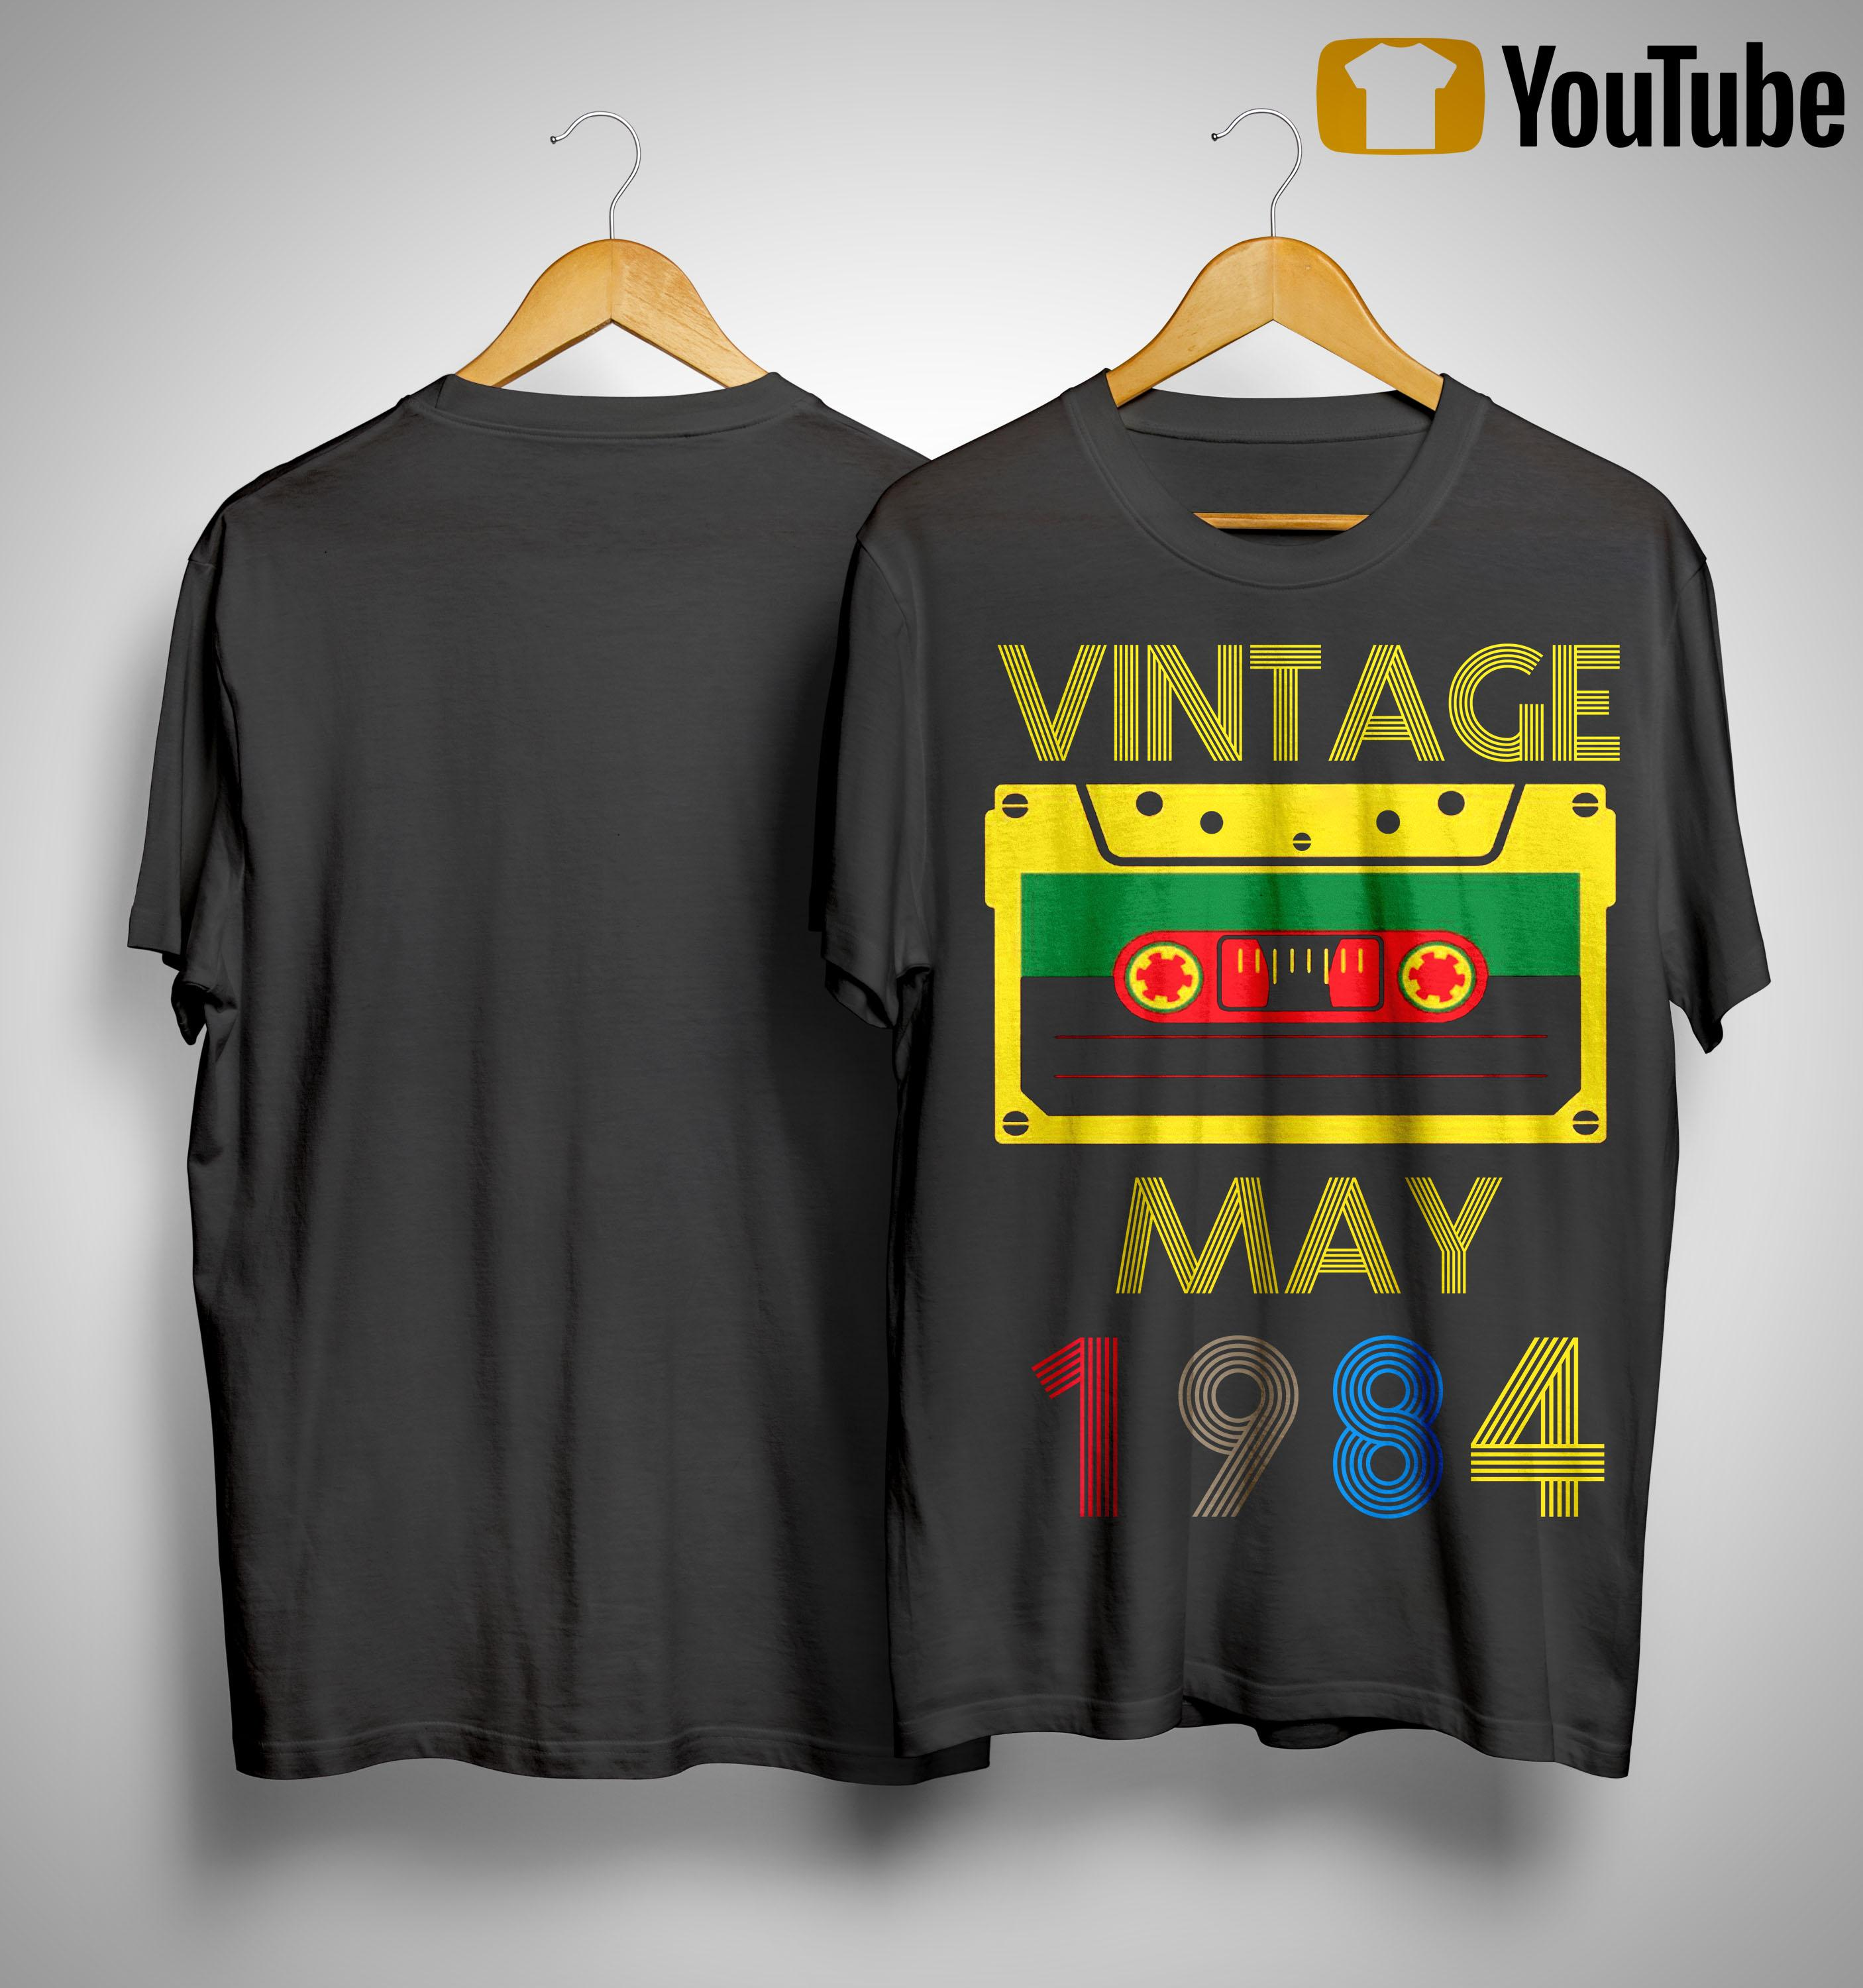 Video Tape Vintage May 1984 Shirt